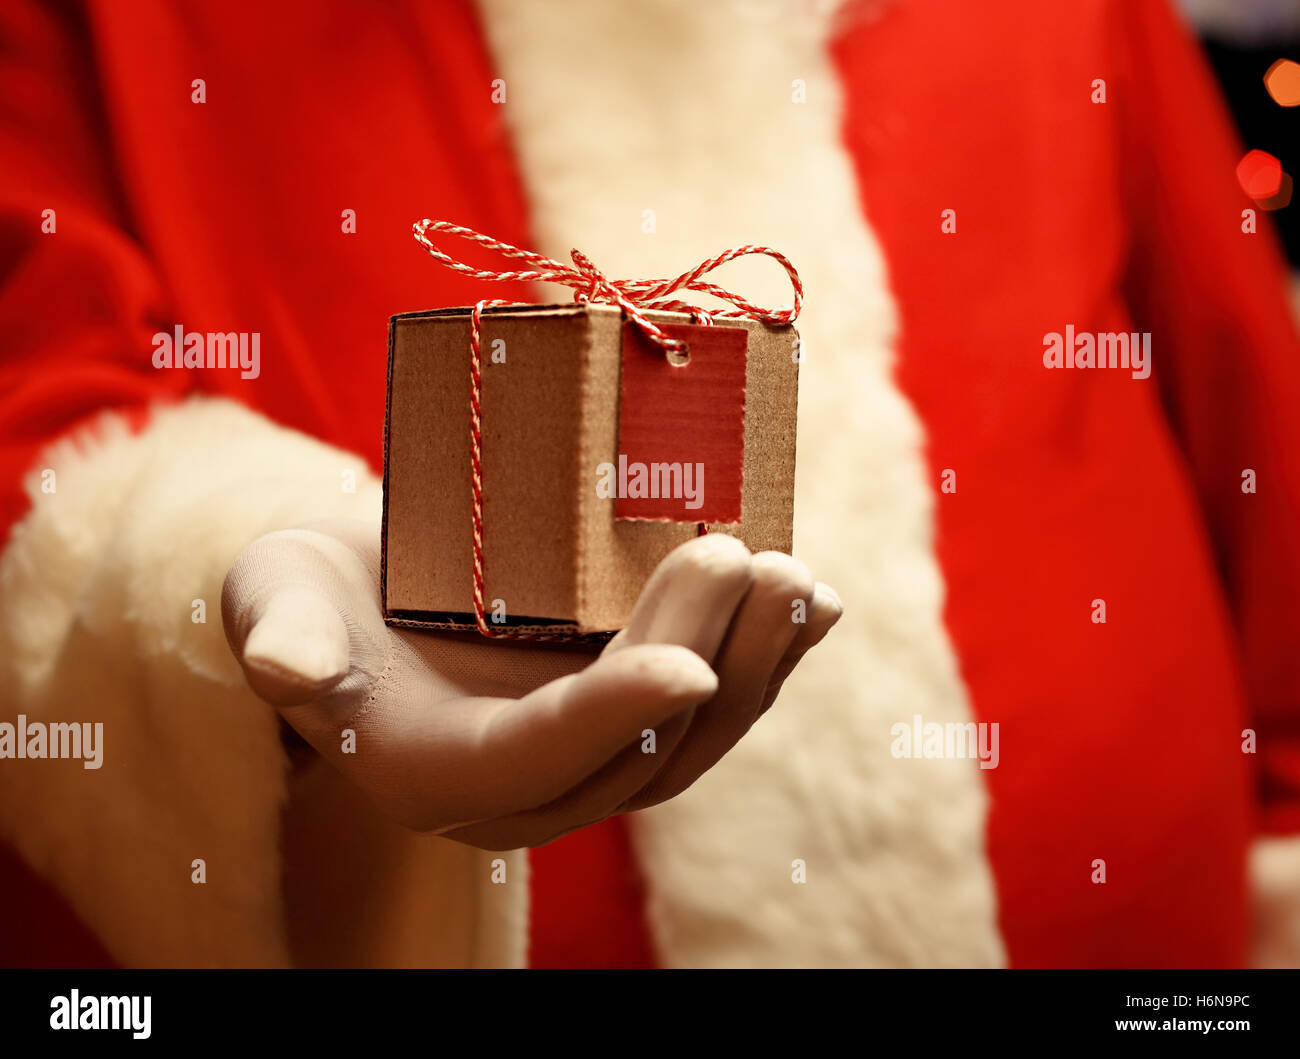 Santa Claus gloved hands holding giftbox - Stock Image